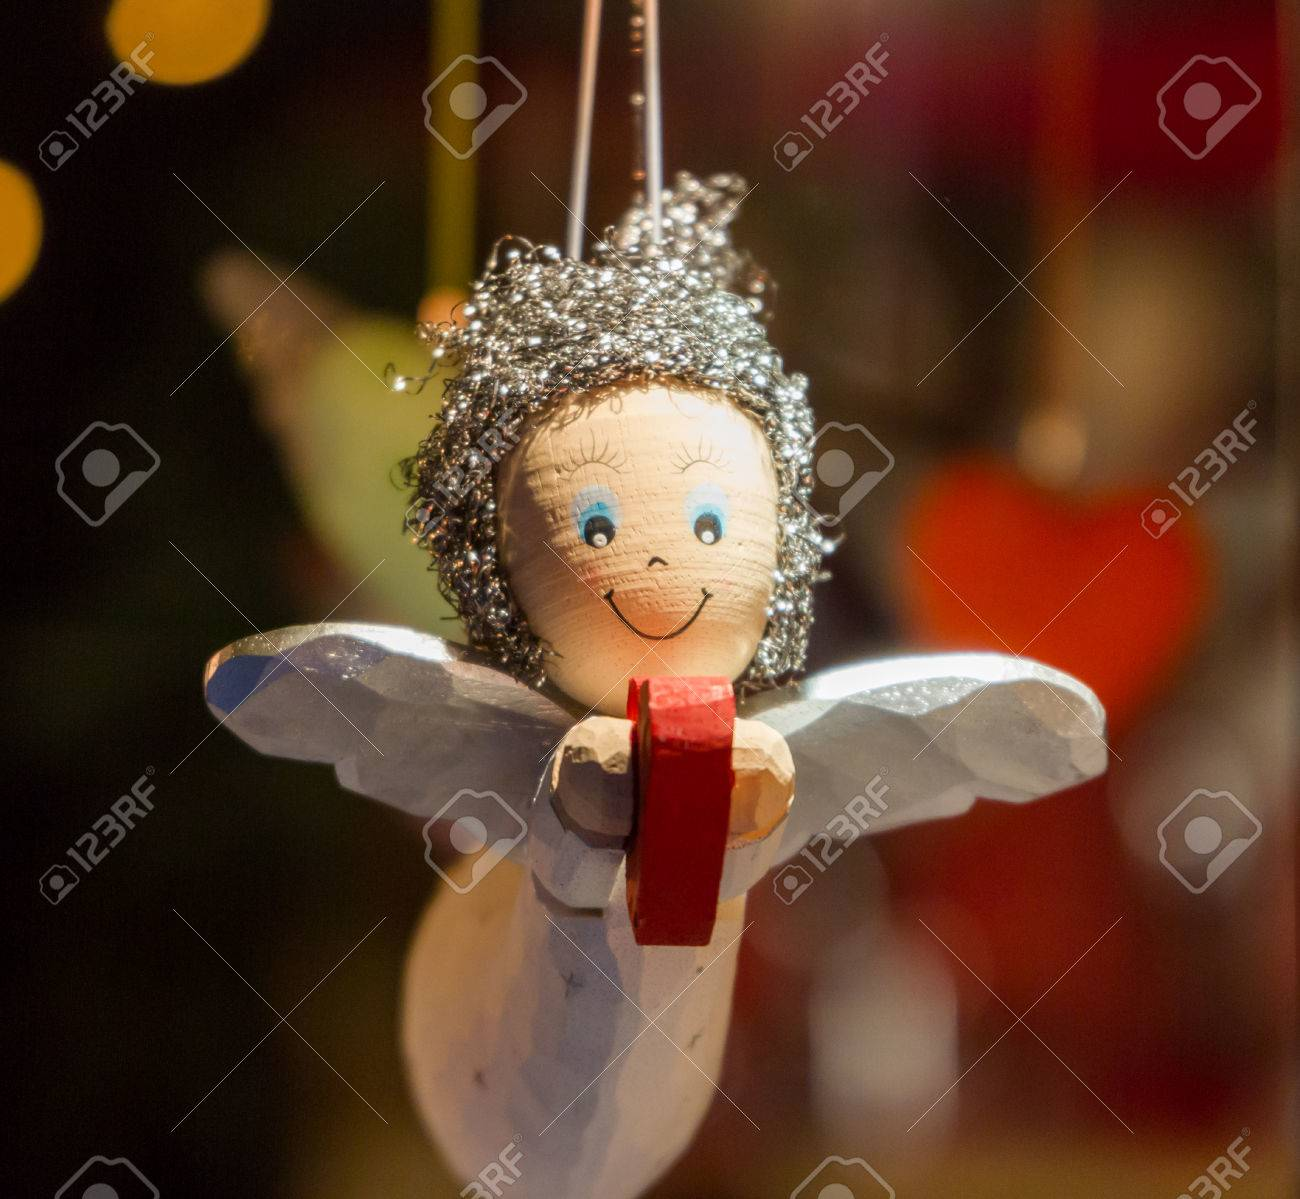 Wooden Angel Holding A Heart As A Christmas Ornament Stock Photo Picture And Royalty Free Image Image 33271128